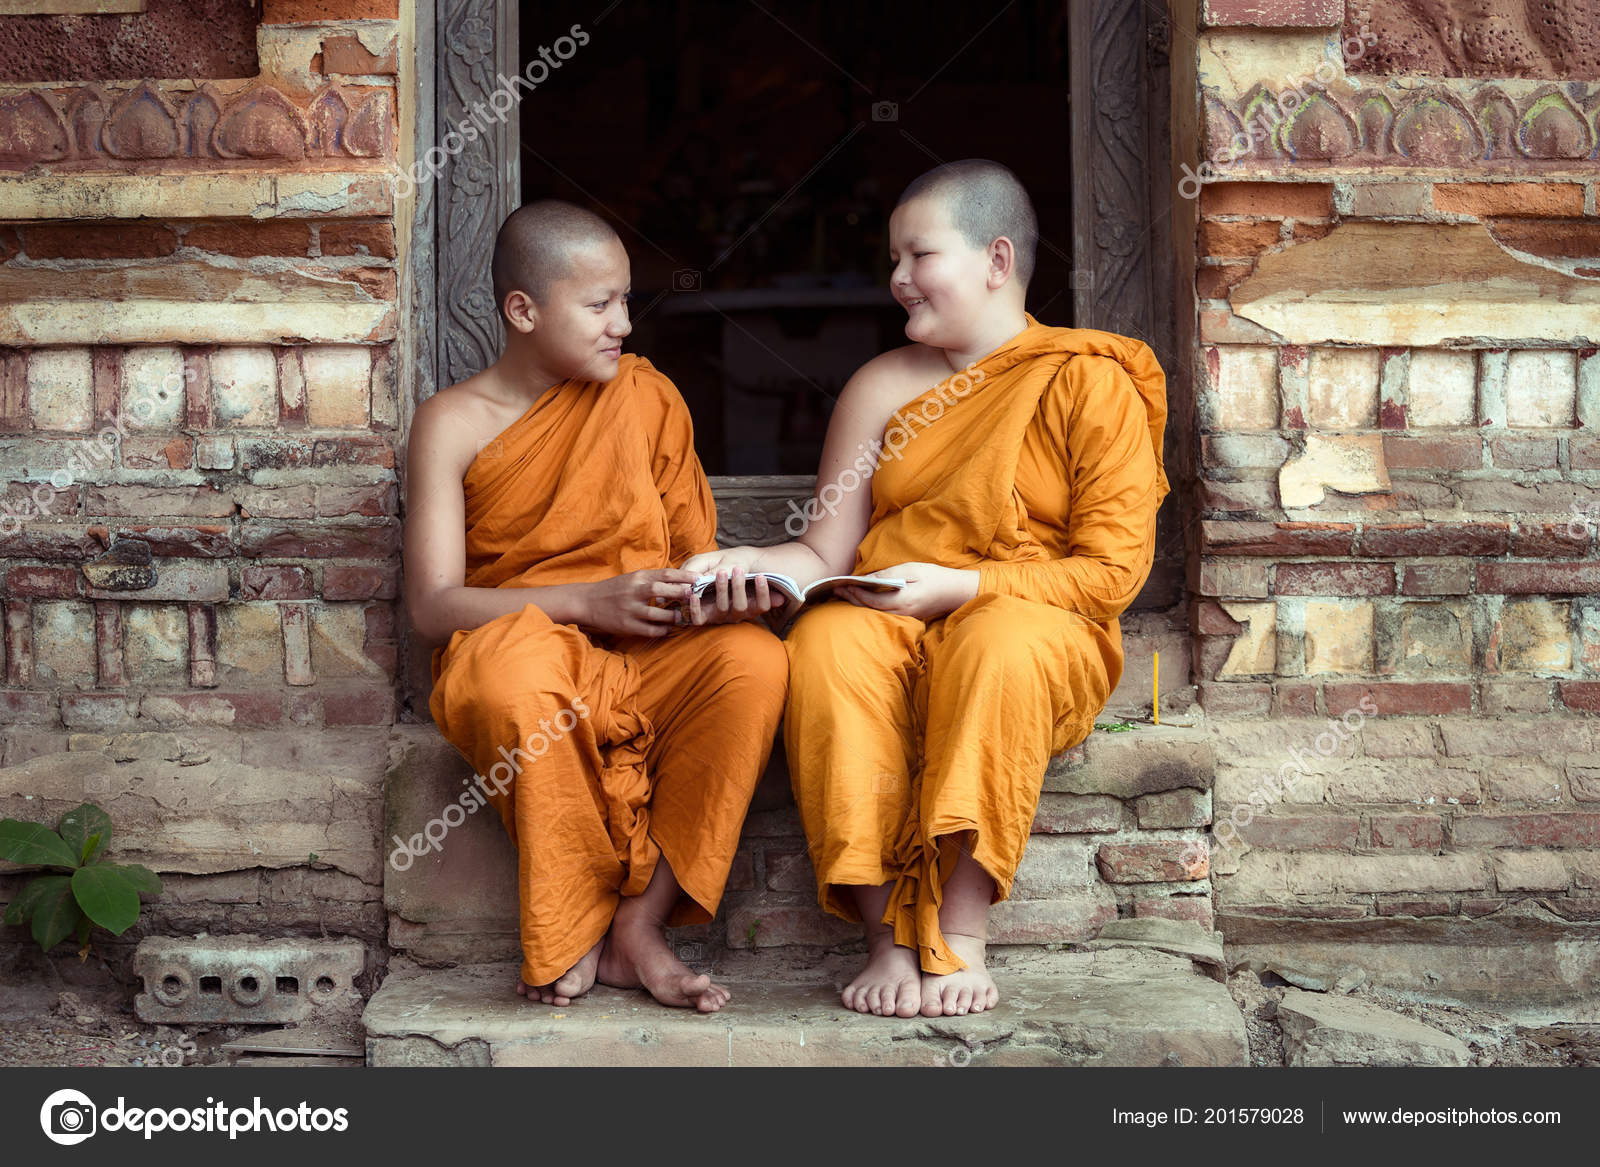 an overview of the old religion of buddhism Buddhism is a religion to about 300 million people around the world the word comes from 'budhi', 'to awaken' it has its origins about 2,500 years ago when siddhartha gotama, known as the buddha, was himself awakened (enlightened) at the age of 35.